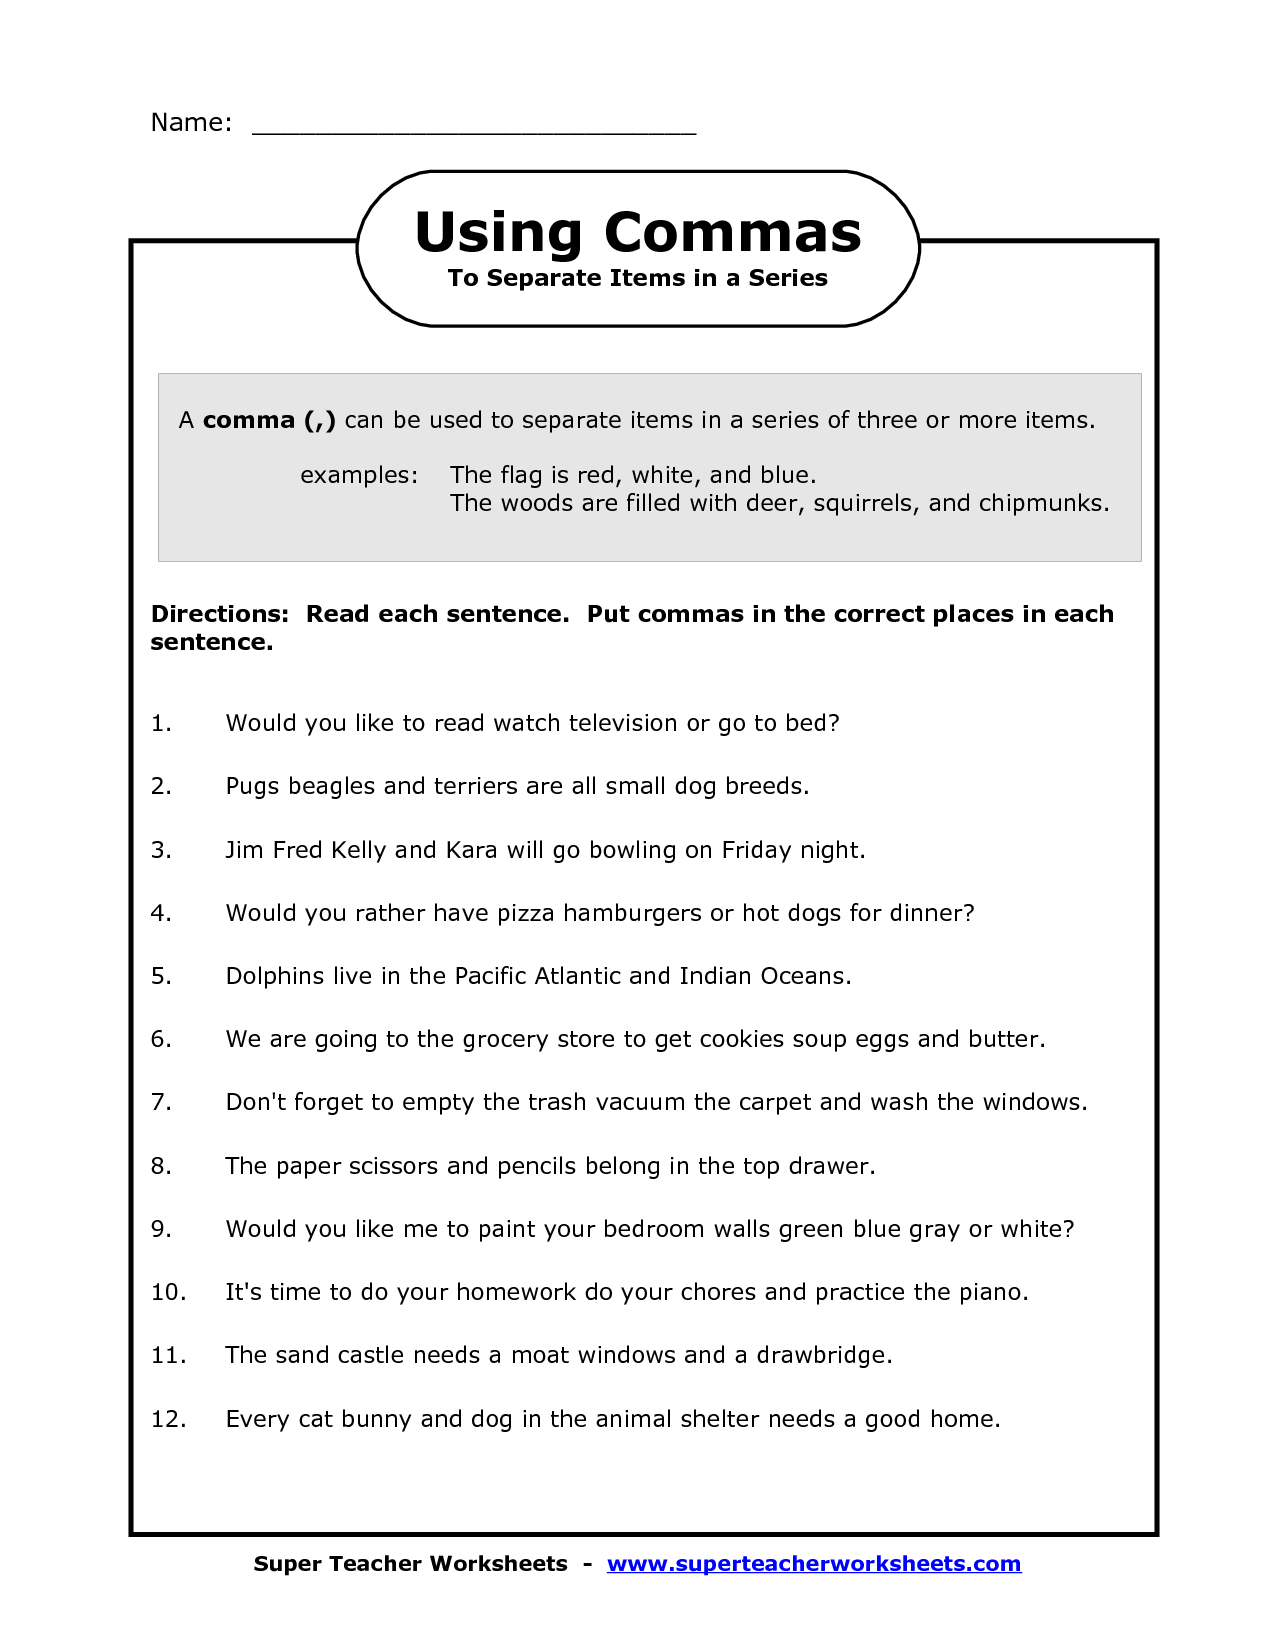 Worksheets Activity Series Worksheet comma in a series worksheets image commas worksheet worksheet